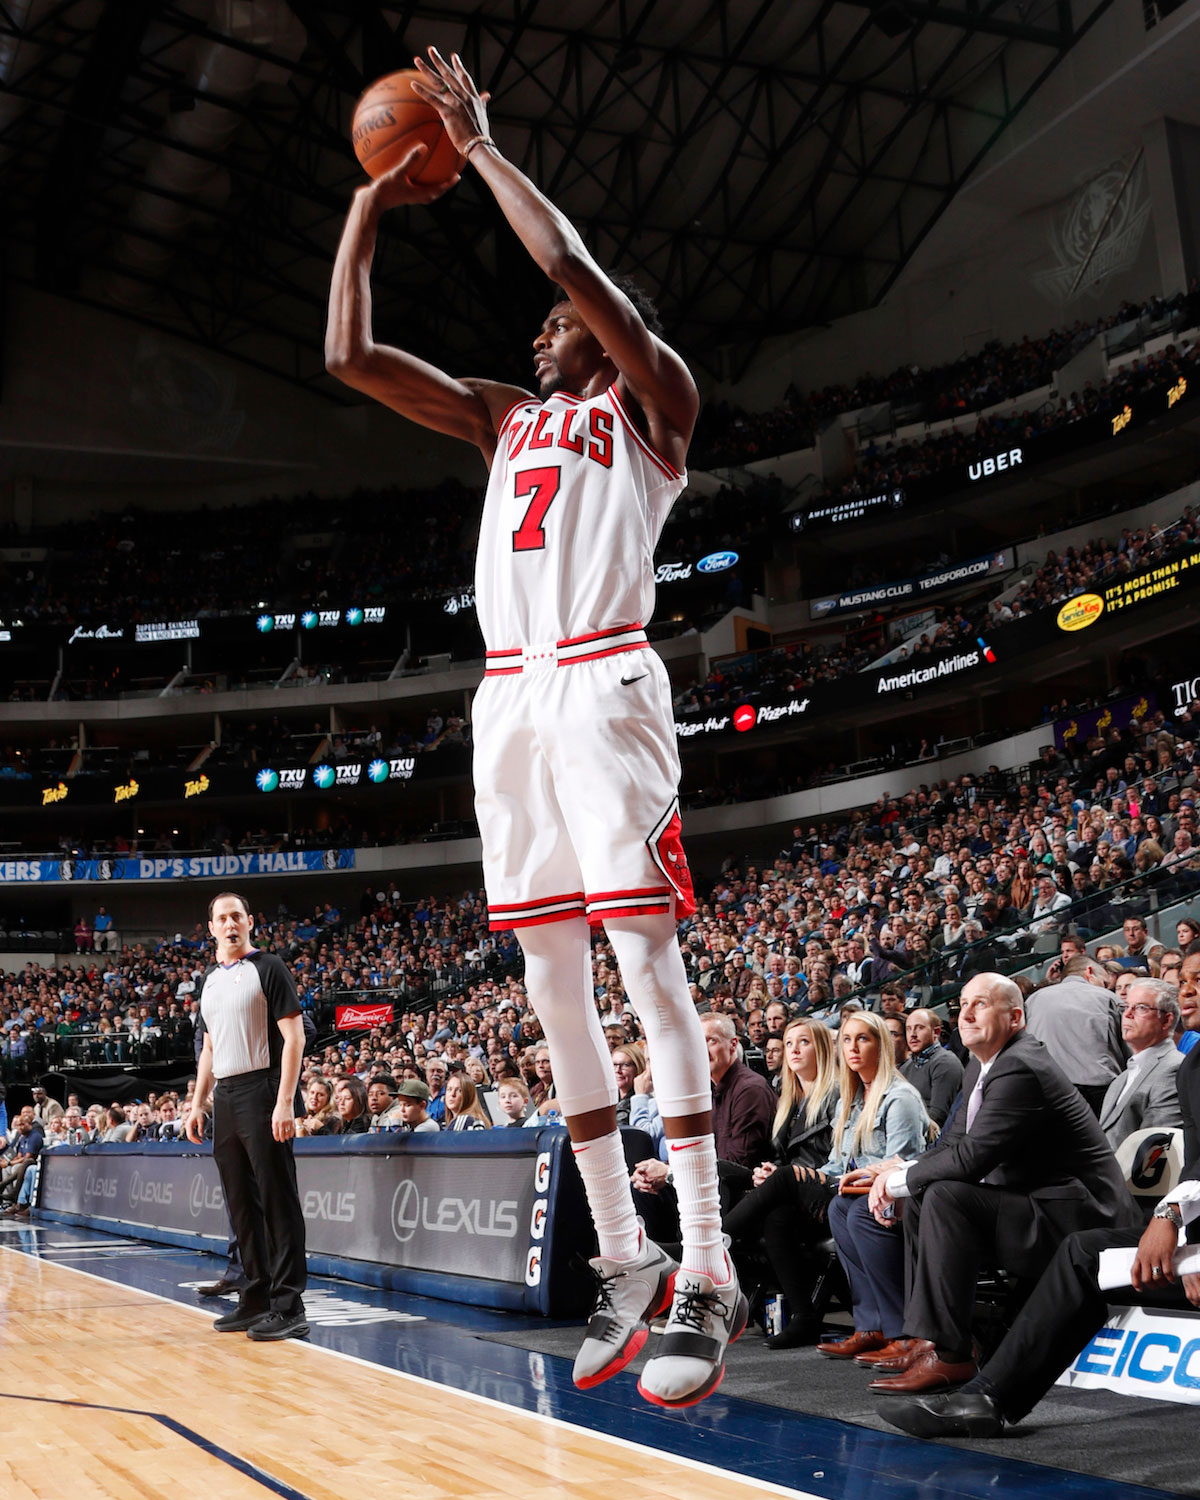 Justin Holiday #7 of the Chicago Bulls shoots the ball against the Dallas Mavericks